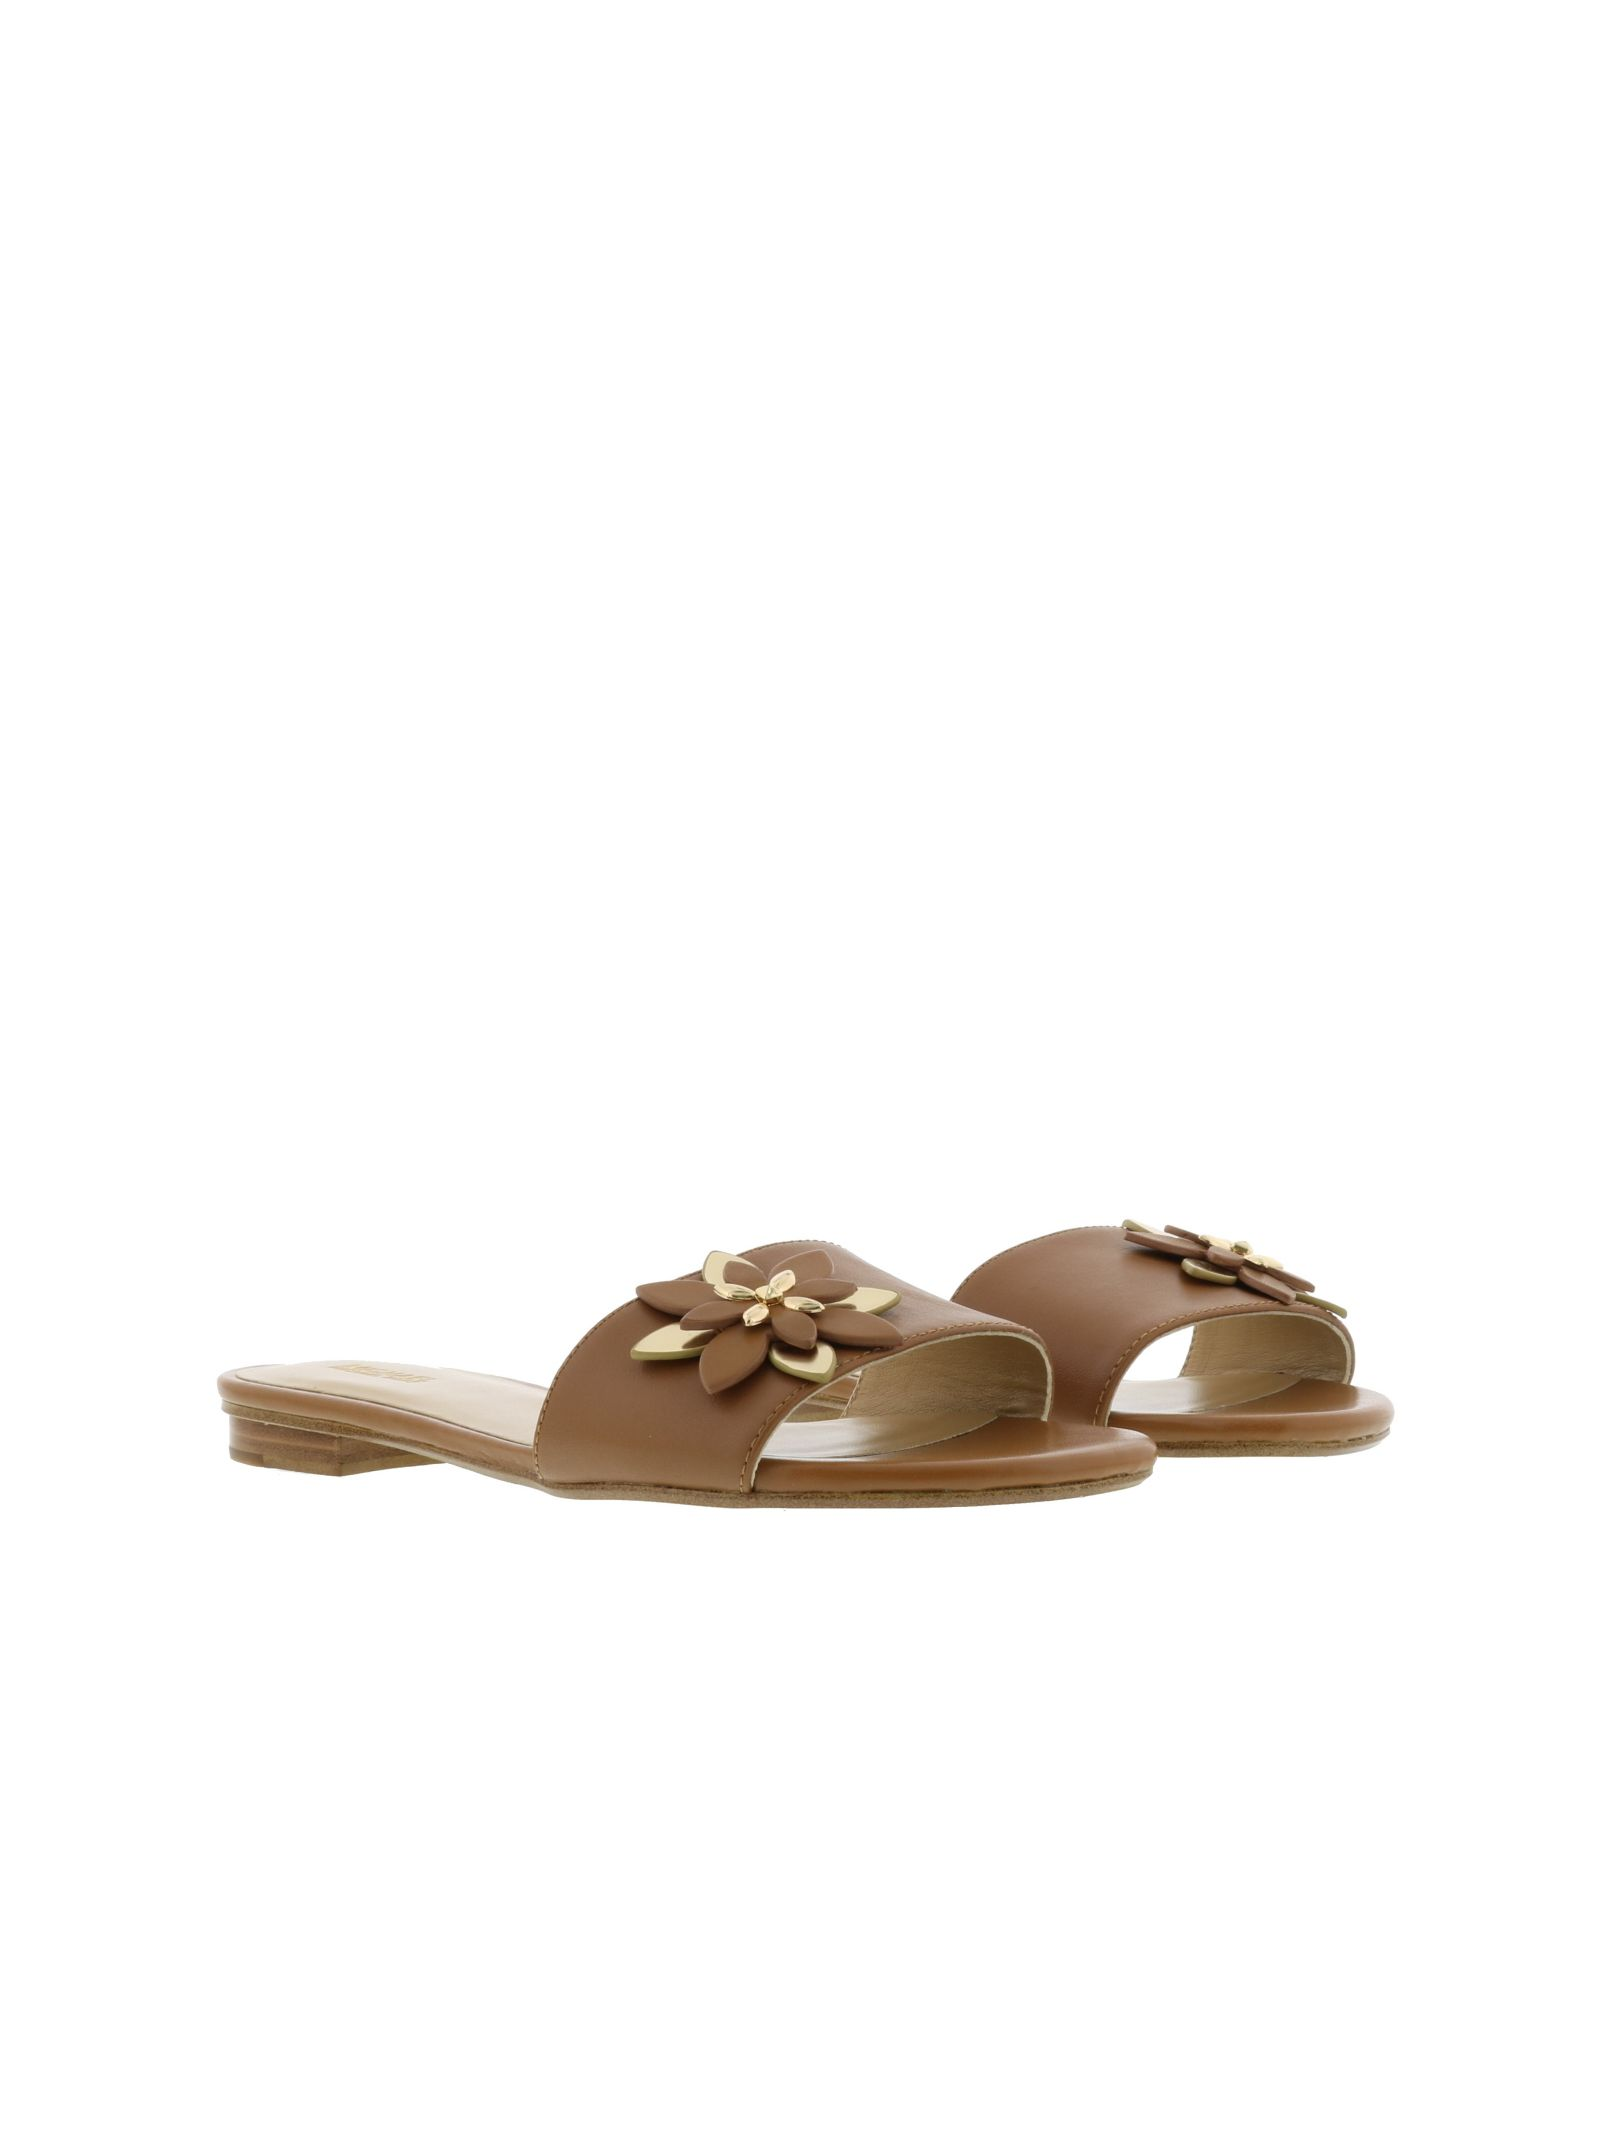 michael kors female michael kors heidi flat sandals